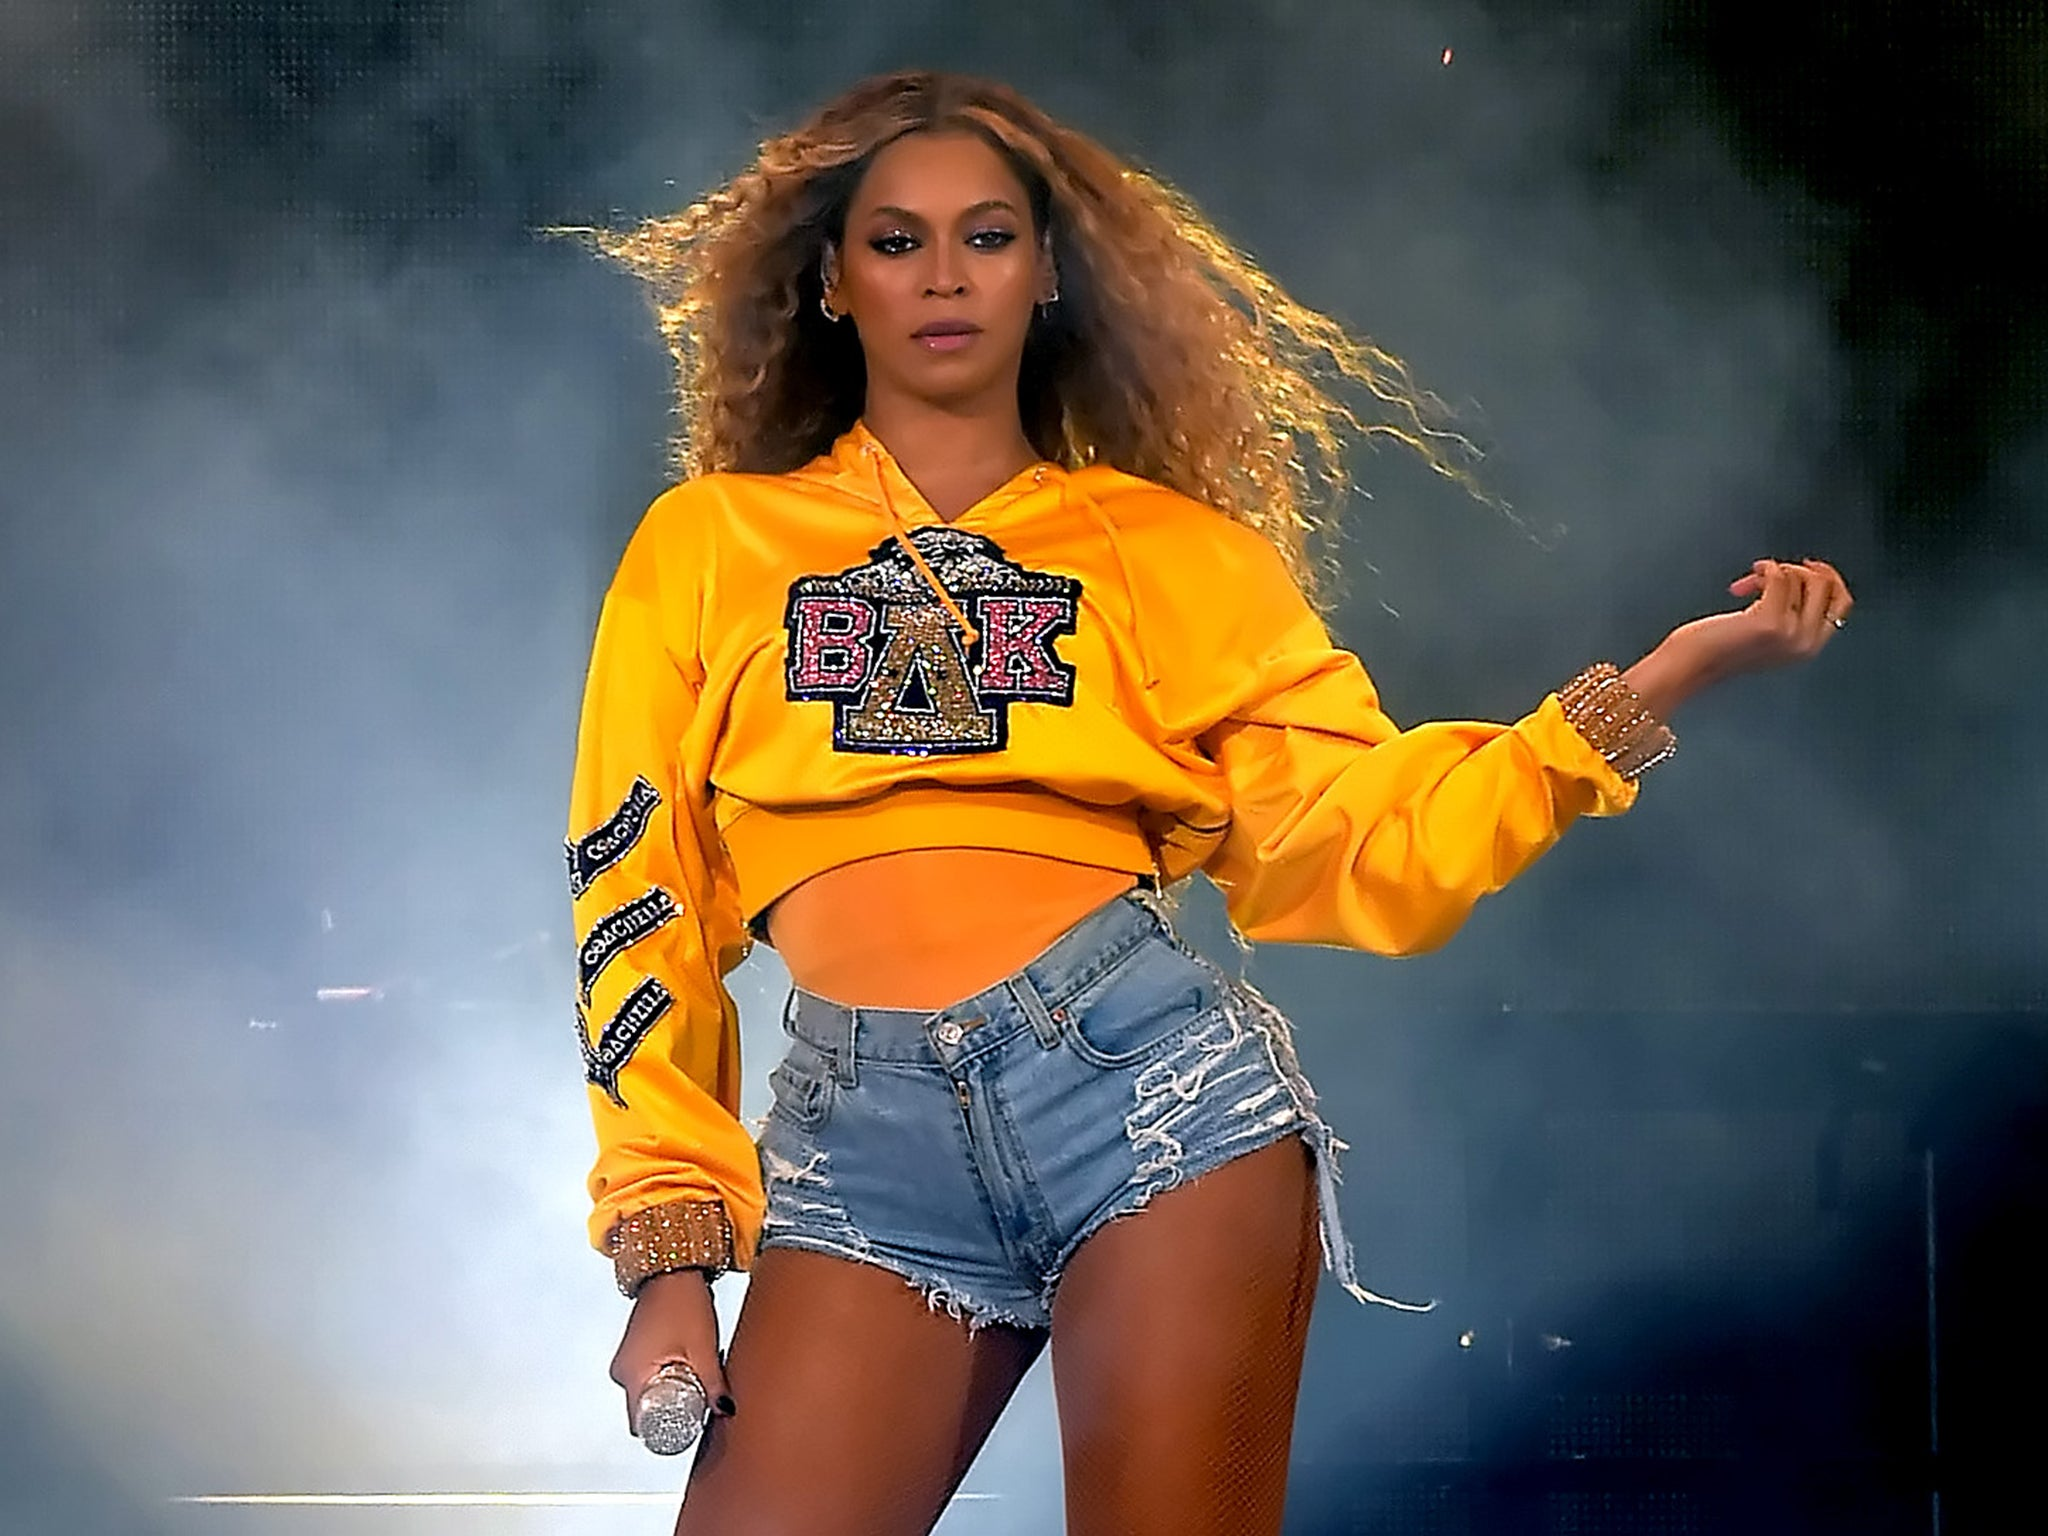 Coachella 2018: Adele, Chance the Rapper, Janelle Monáe and more react to Beyoncé set | The Independent